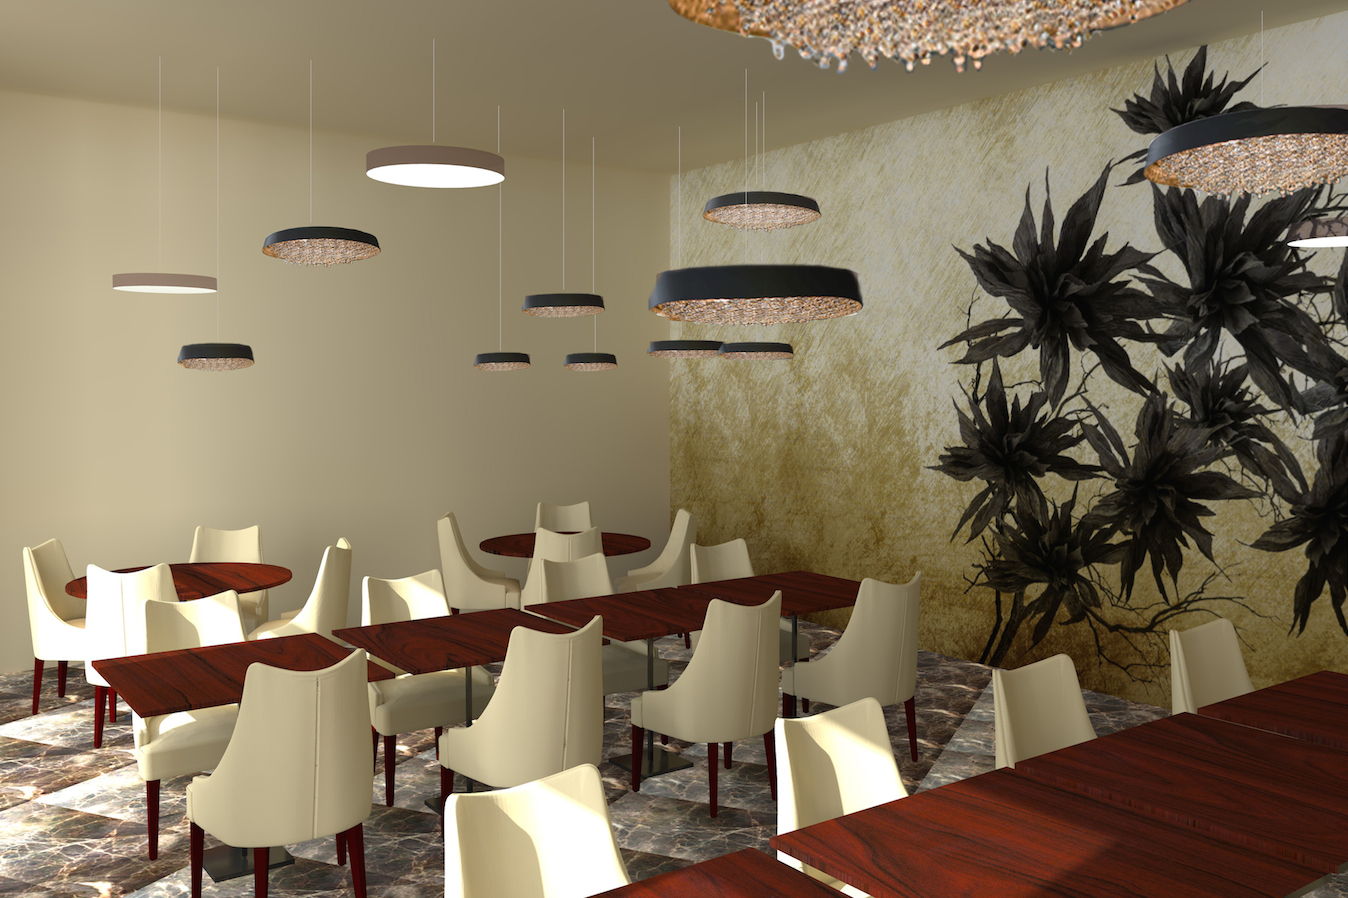 Restaurant Brugmann Pure Joy Interior Design